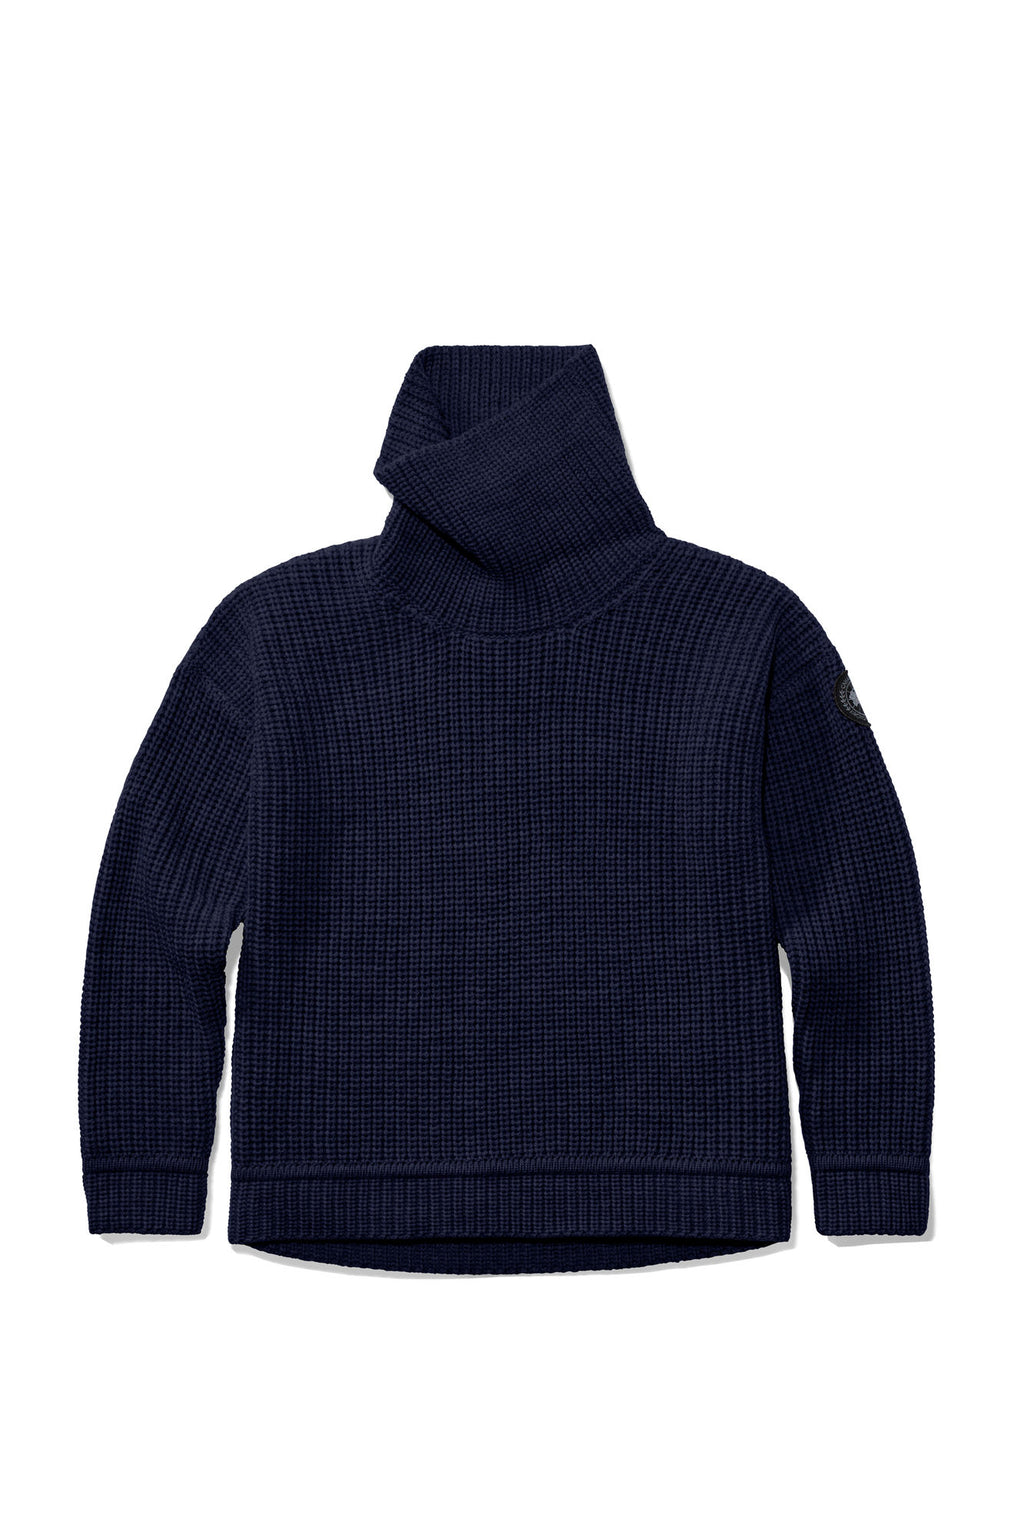 Williston knit Sweater -Navy